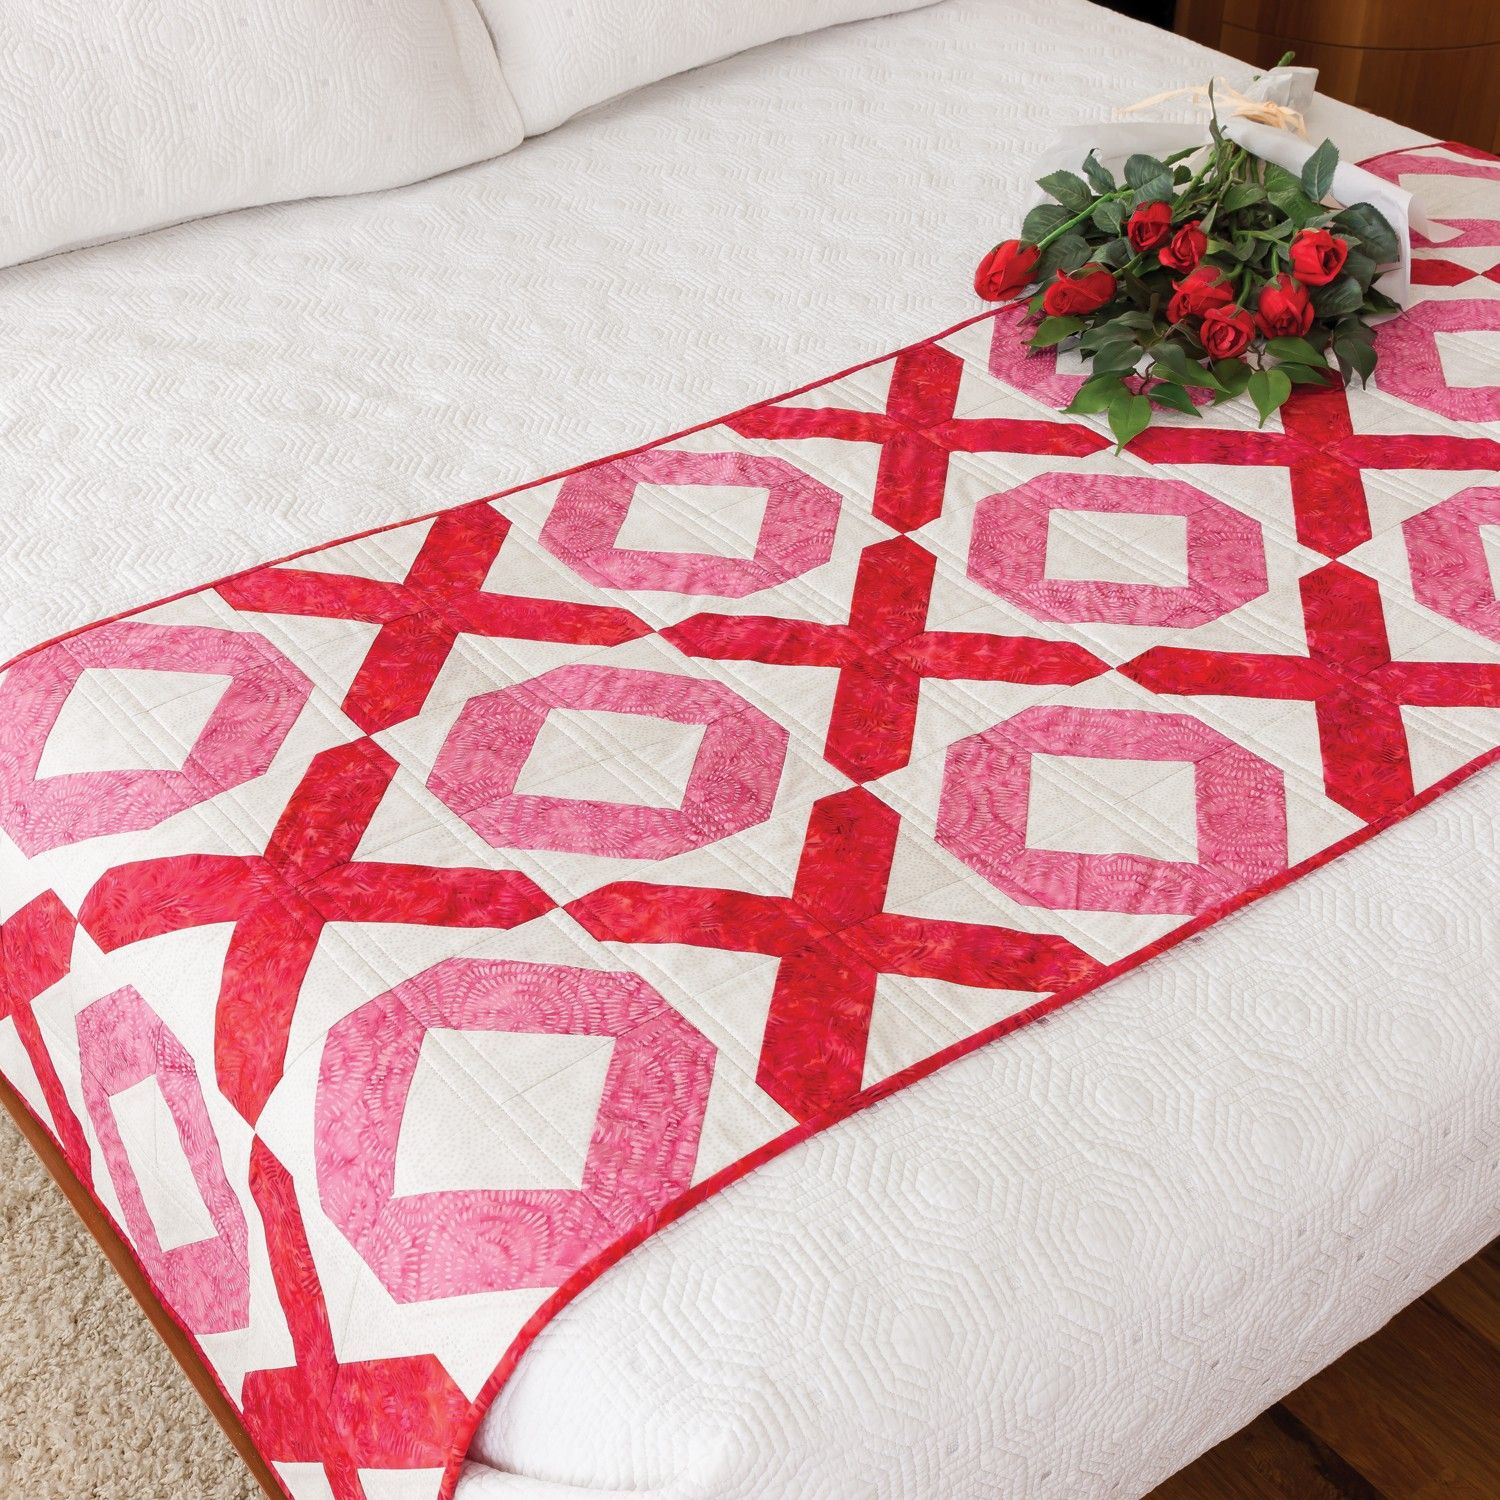 Image of: Free Quilt Square Patterns